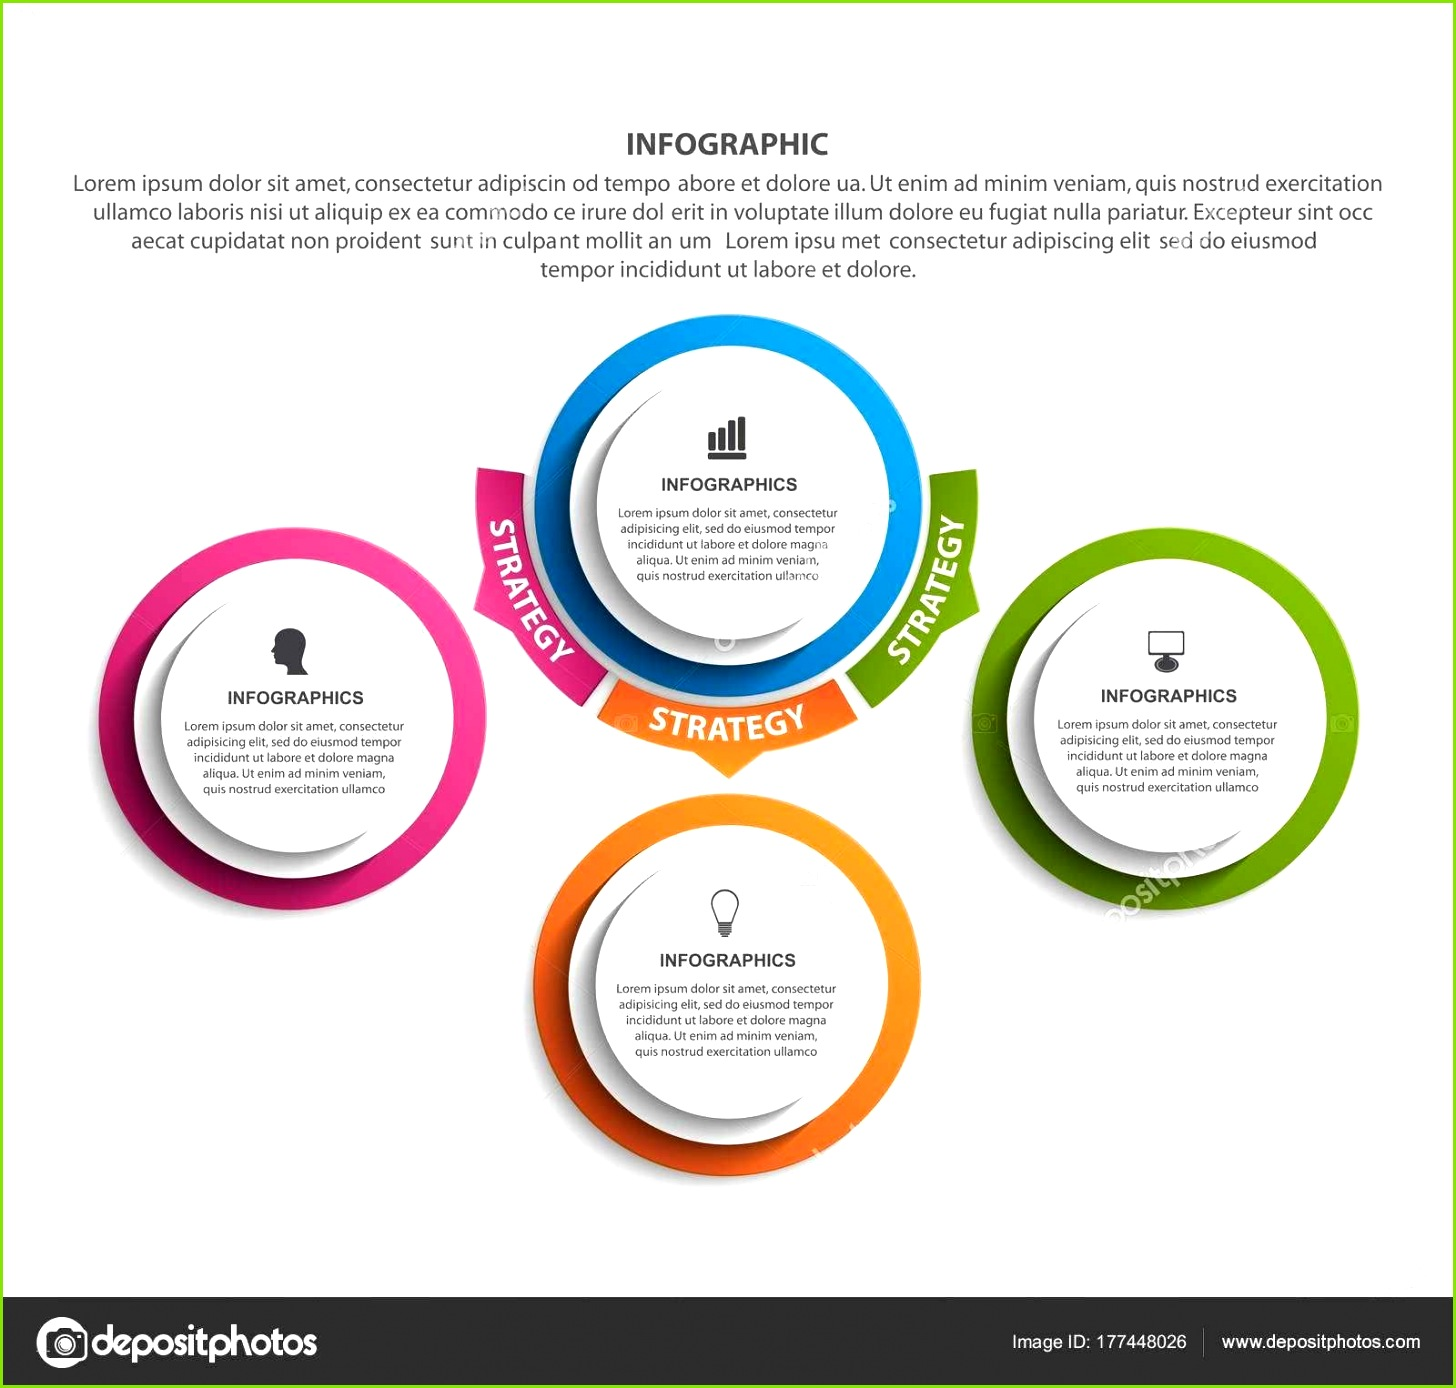 Managed Services Infographic – ¢Ë†Å¡ Infographic Template for Powerpoint astonishing Ppt 0d